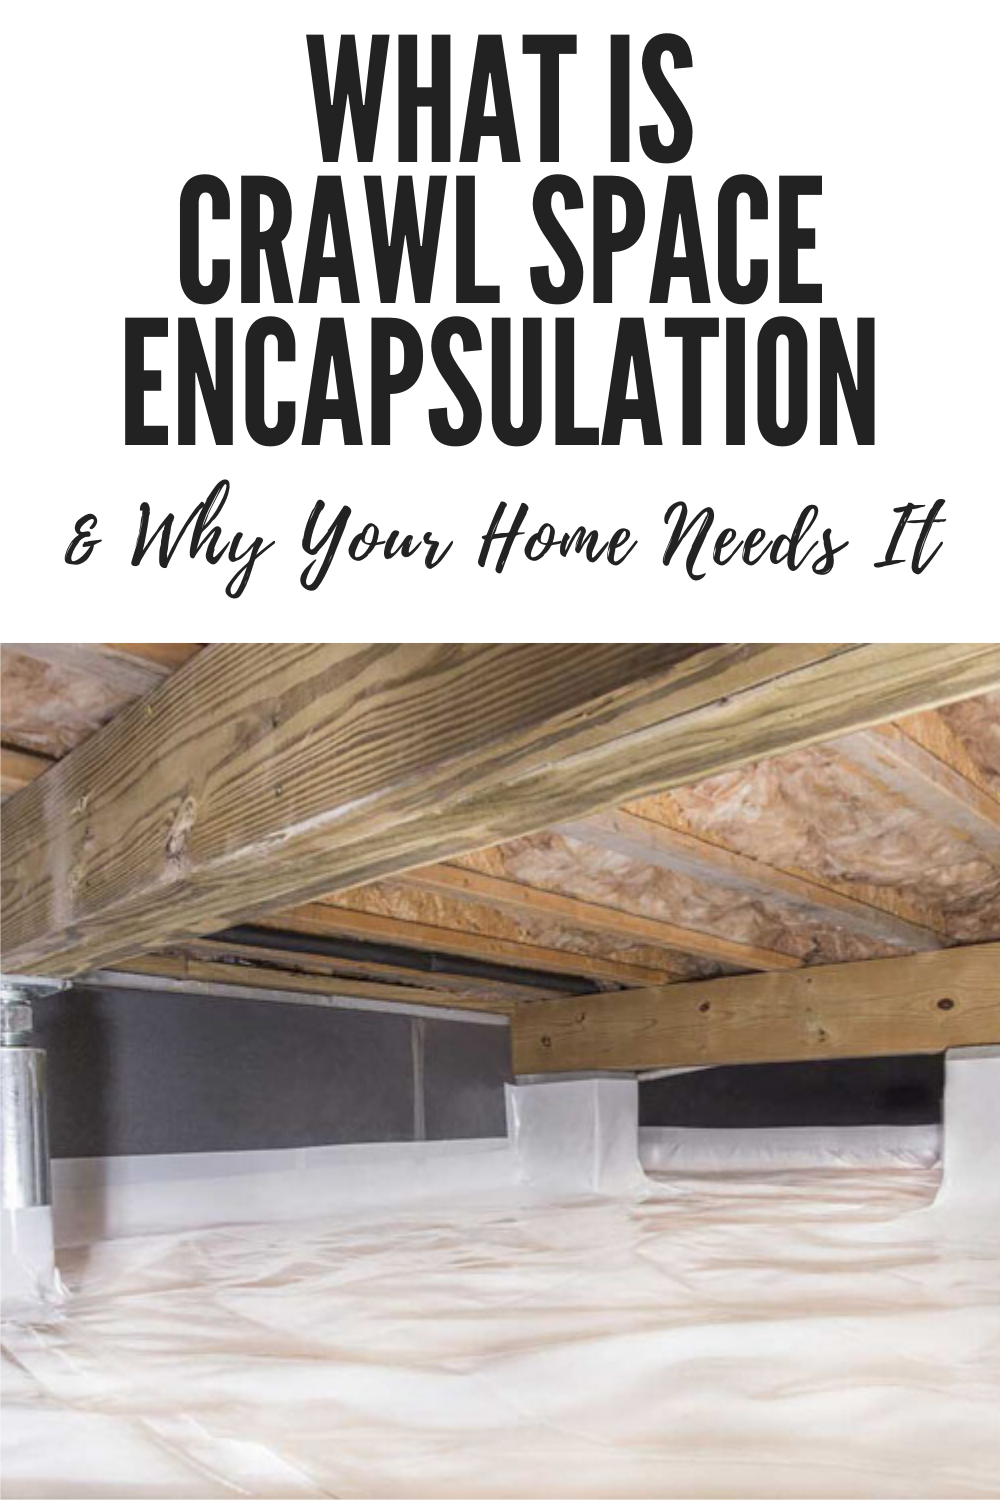 What Is Crawl Space Encapsulation & Why Your Home Needs It